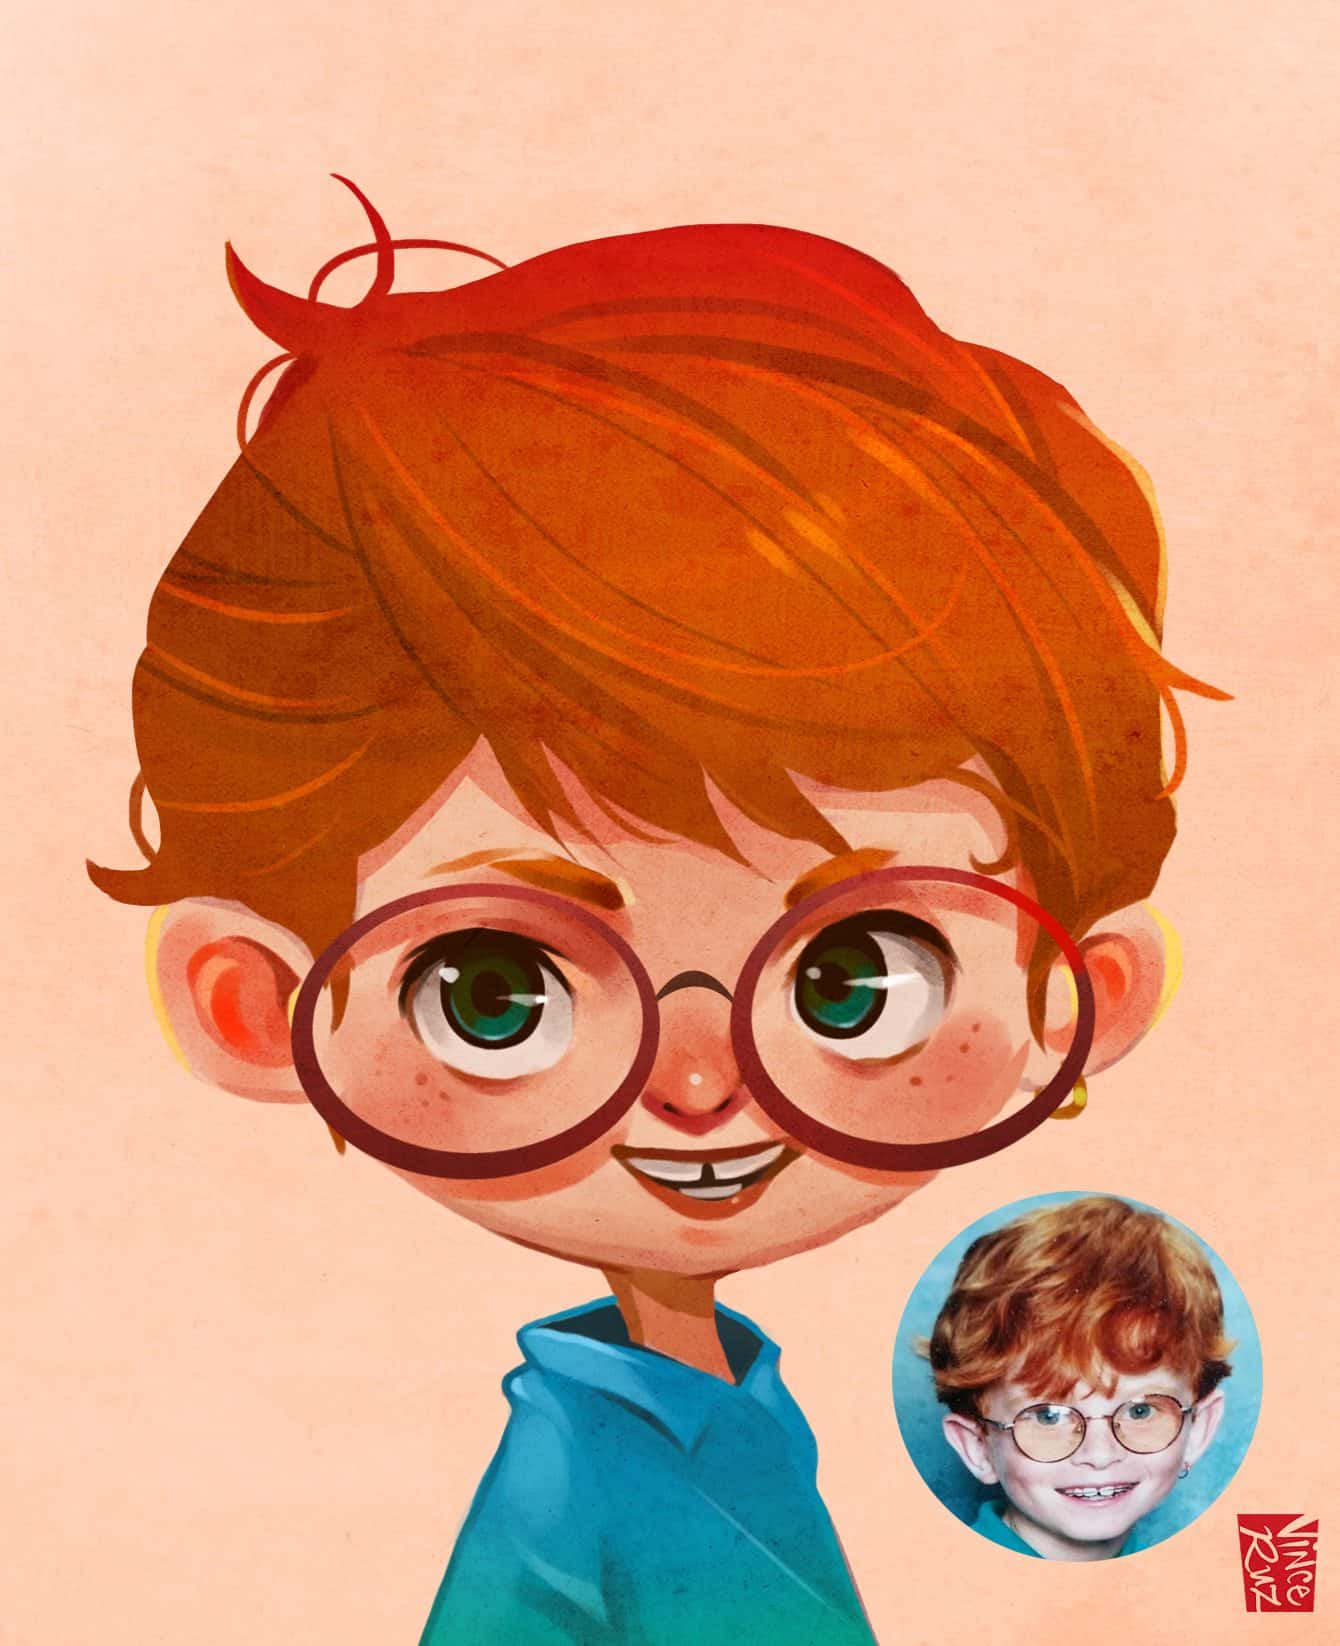 Commission Sample by Vince Ruz Portrait of a Boy with Glasses